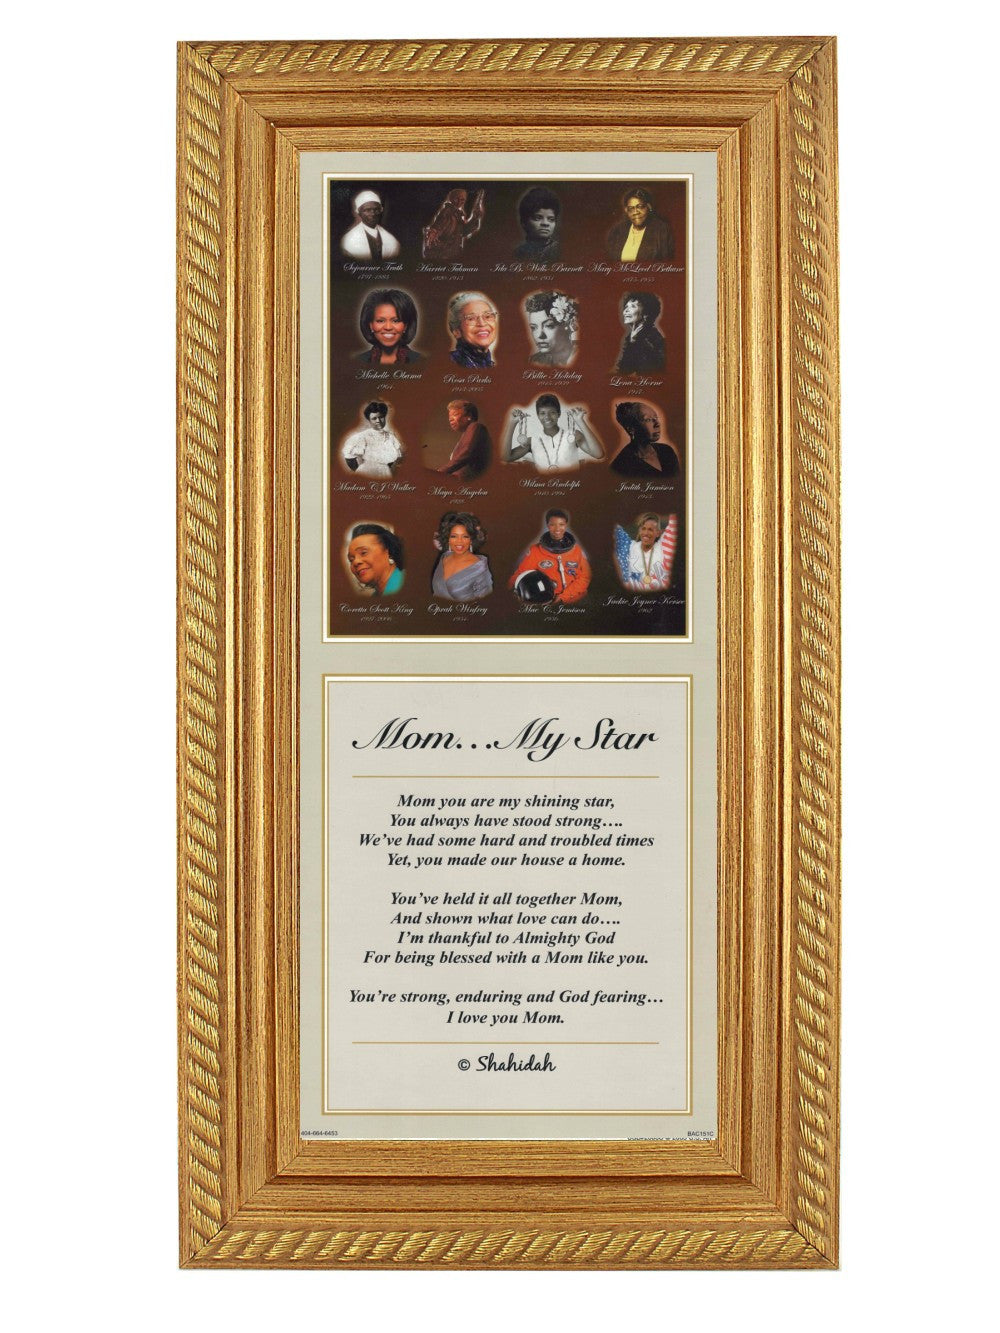 Mom, My Star by Shahidah (Gold Rope Frame)